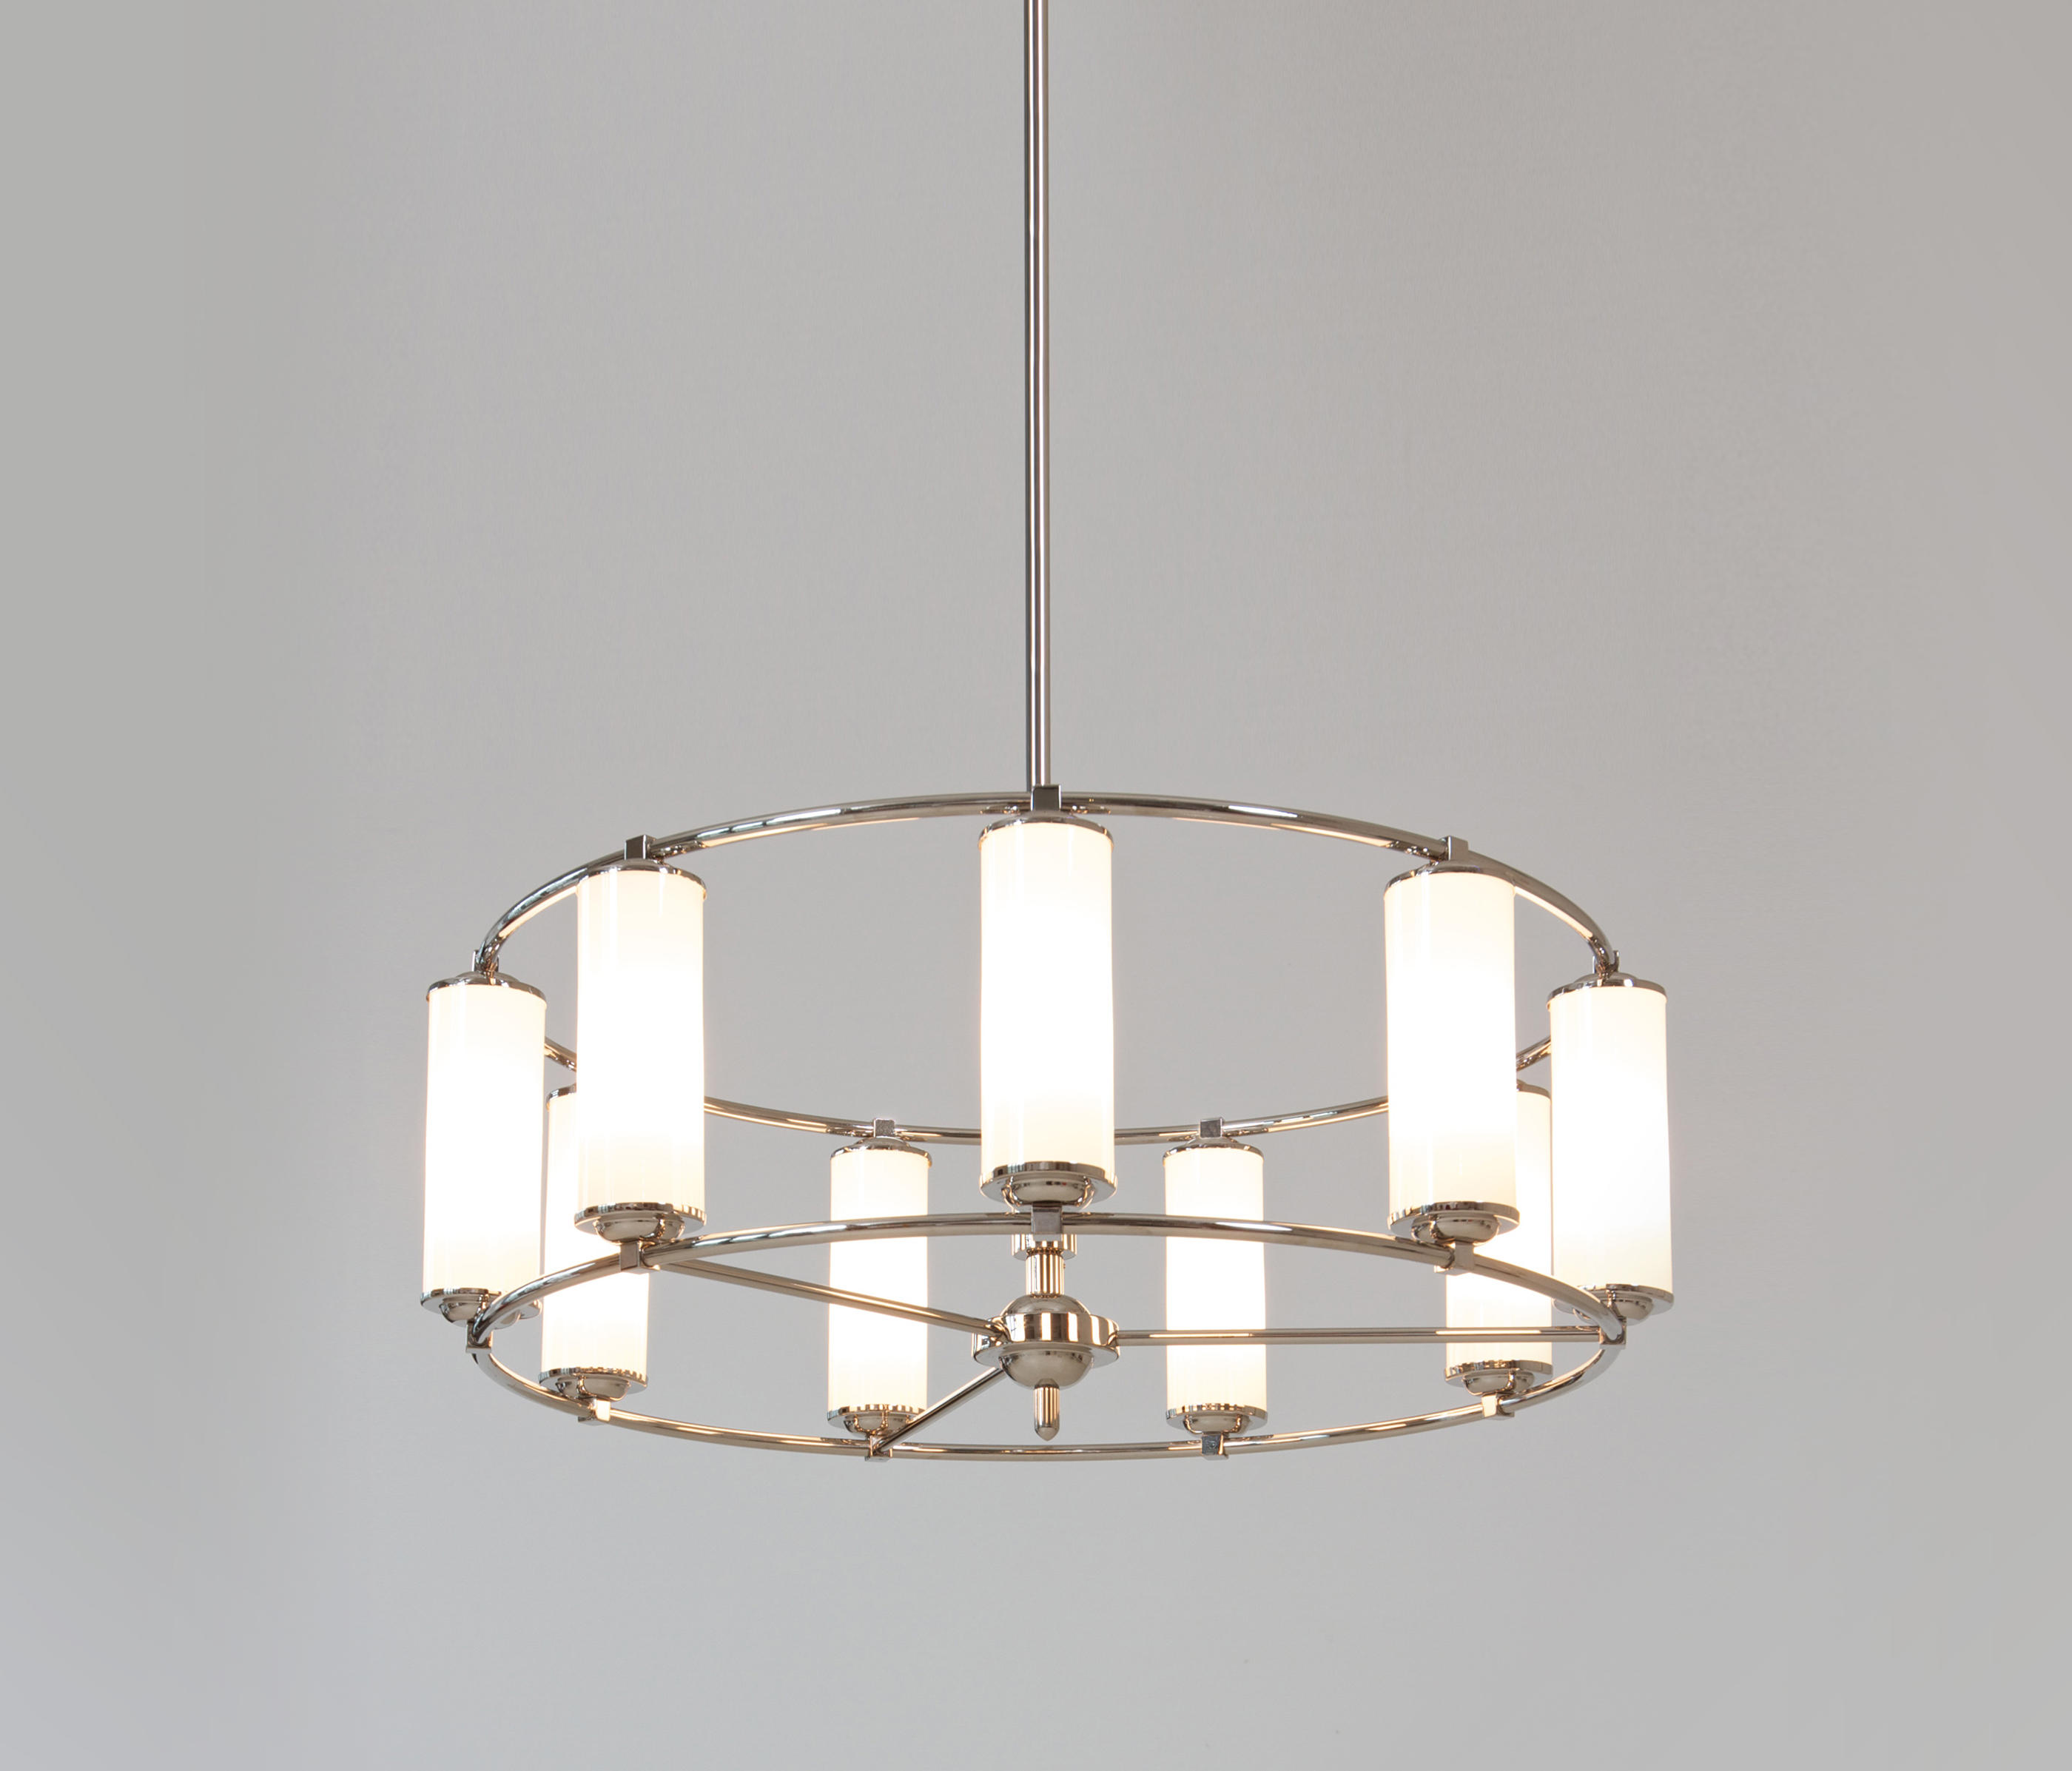 Pendant lamp in bauhaus design general lighting from for Product design berlin